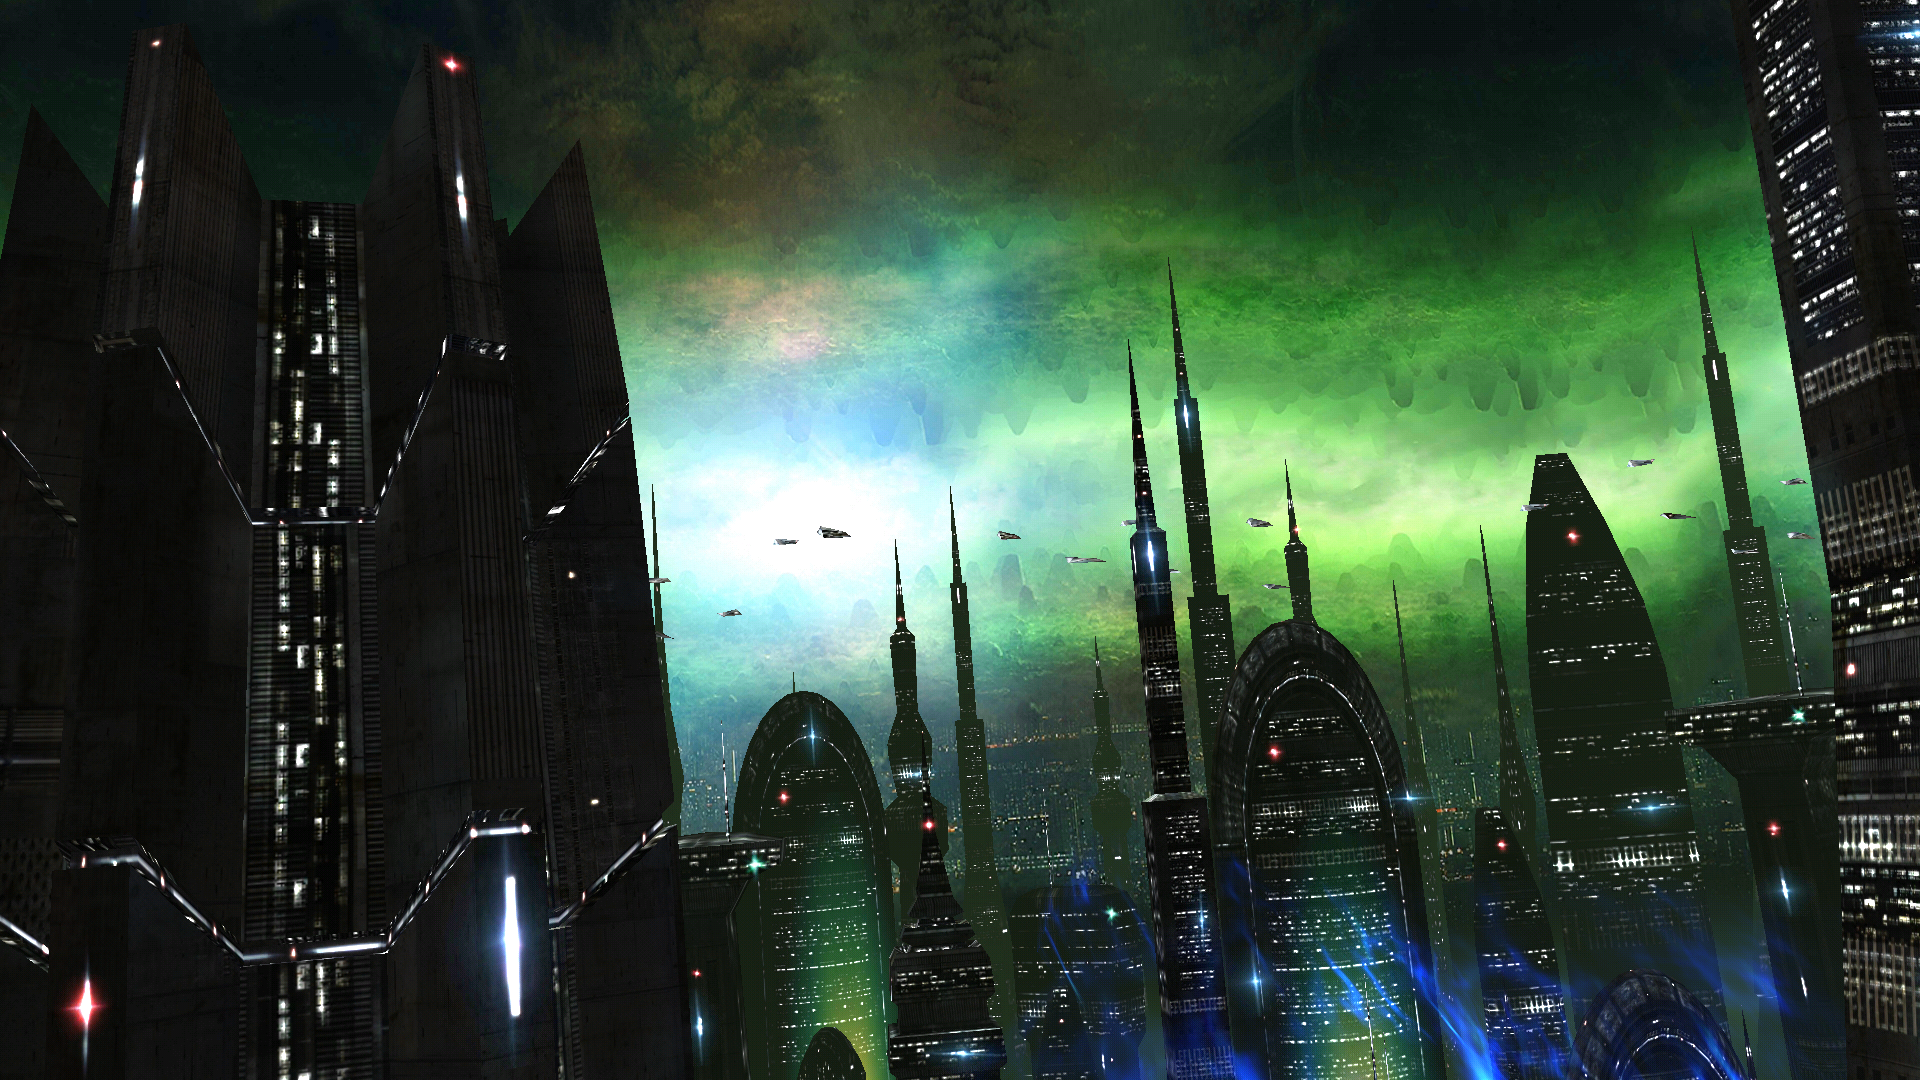 Space Colony Turns Your Home Screen Into An Alien Cityscape - Space Colony Live , HD Wallpaper & Backgrounds